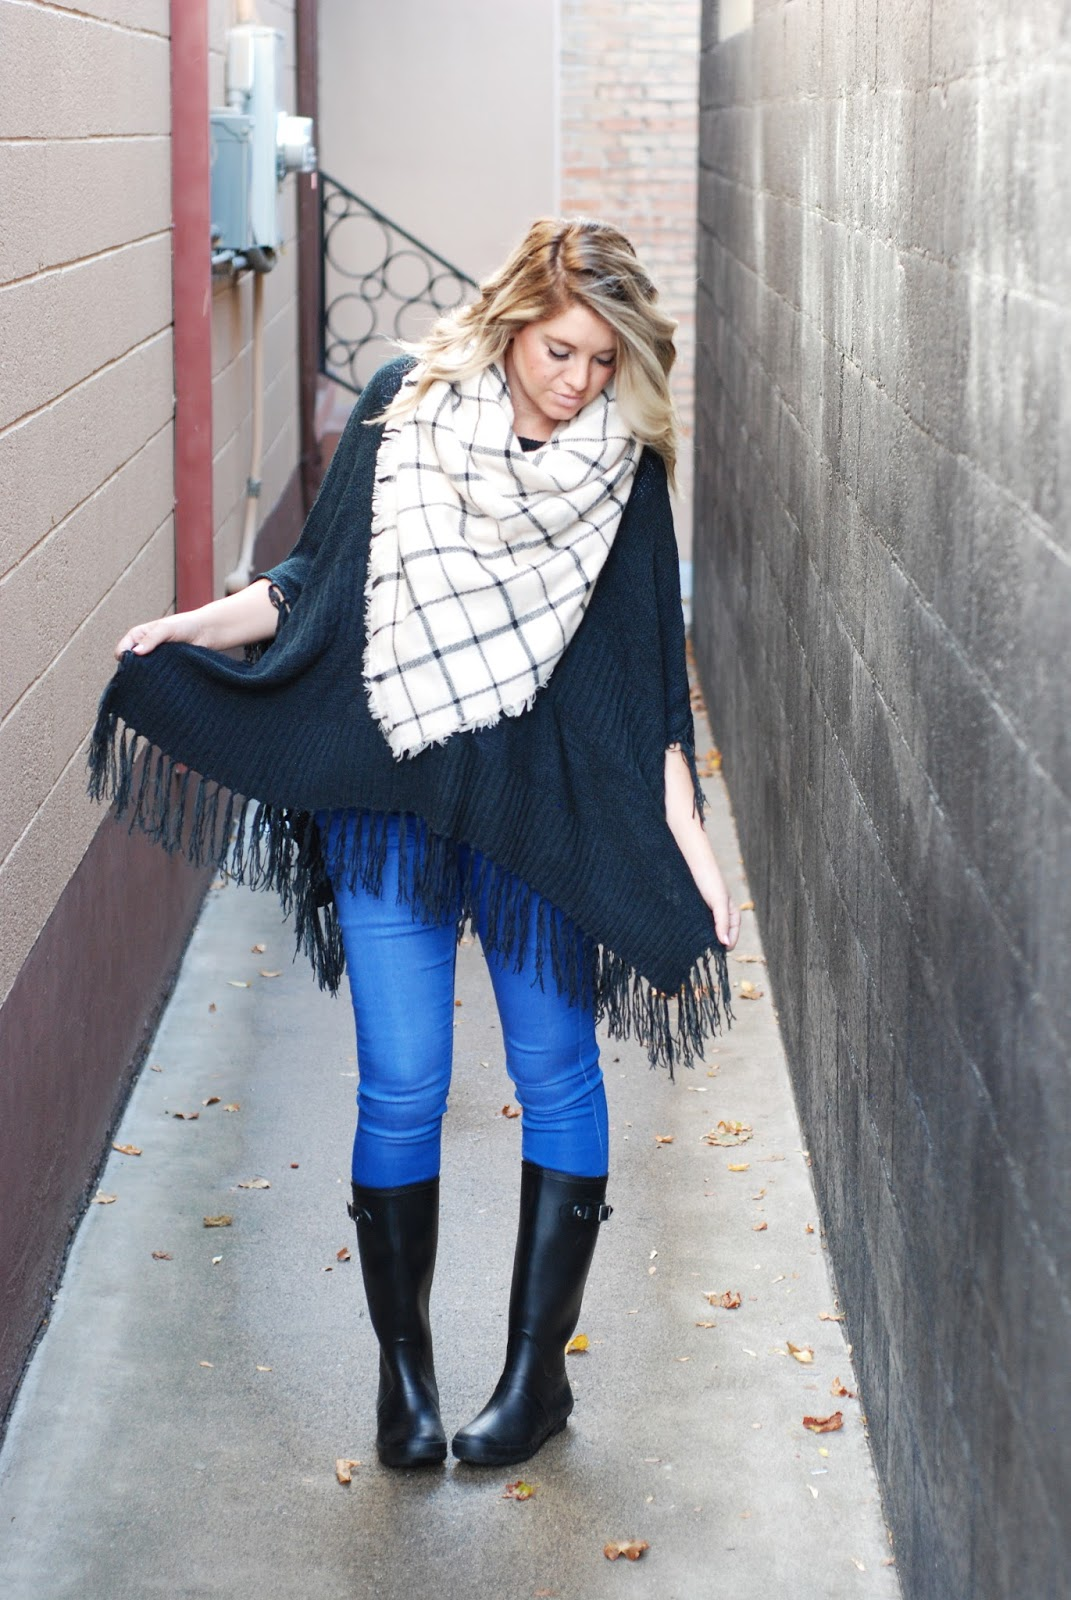 Poncho, BB Styled, Utah Fashion Blogger, Fall Outfit